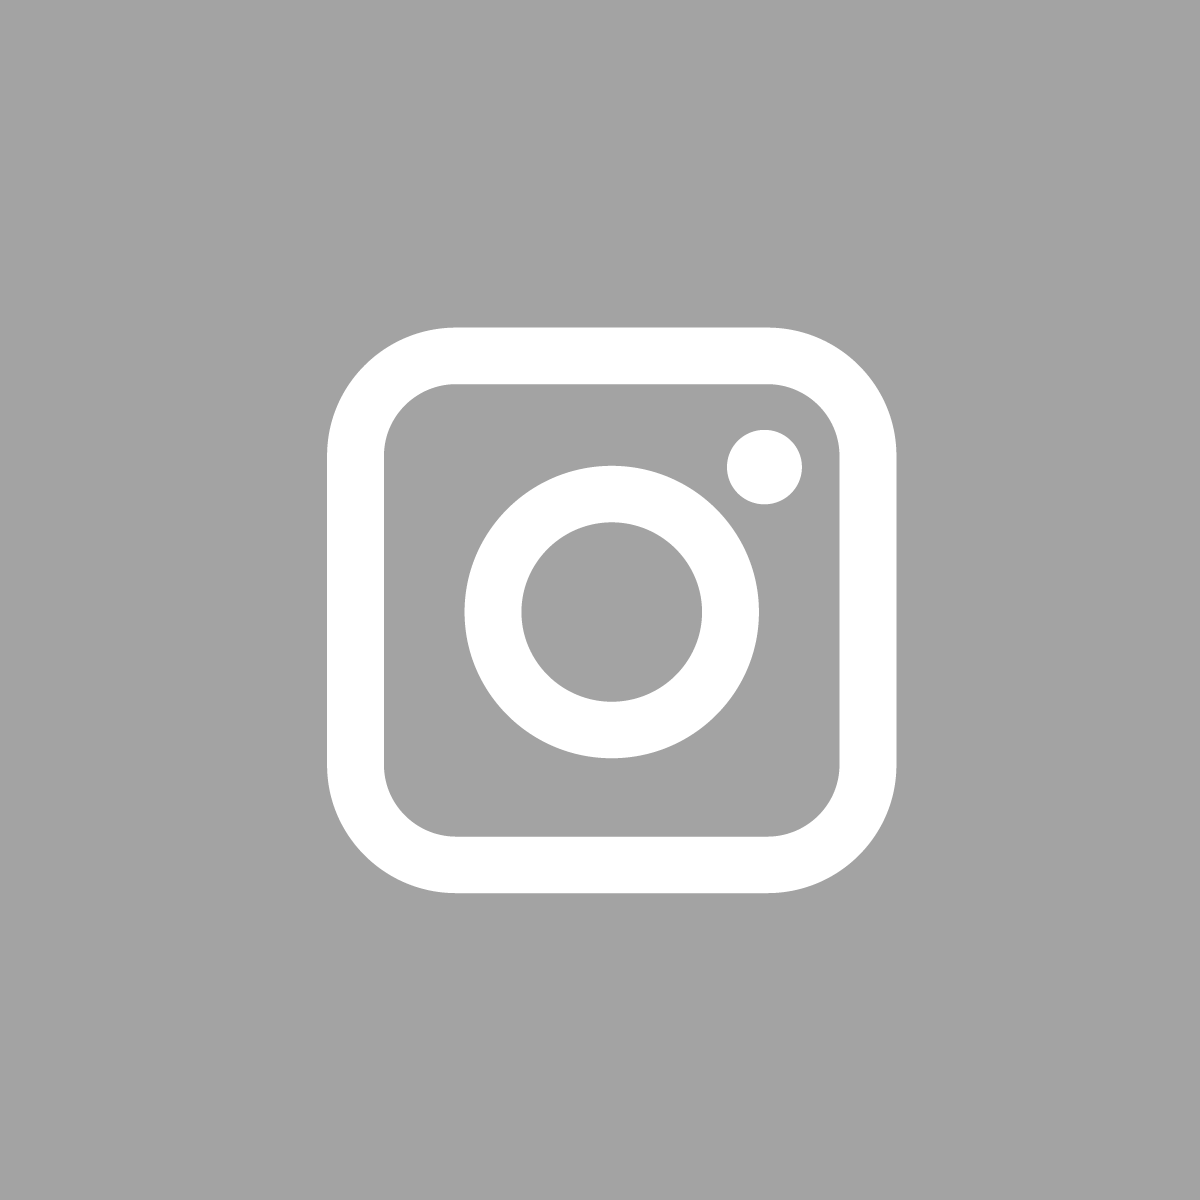 instagram icon symbol